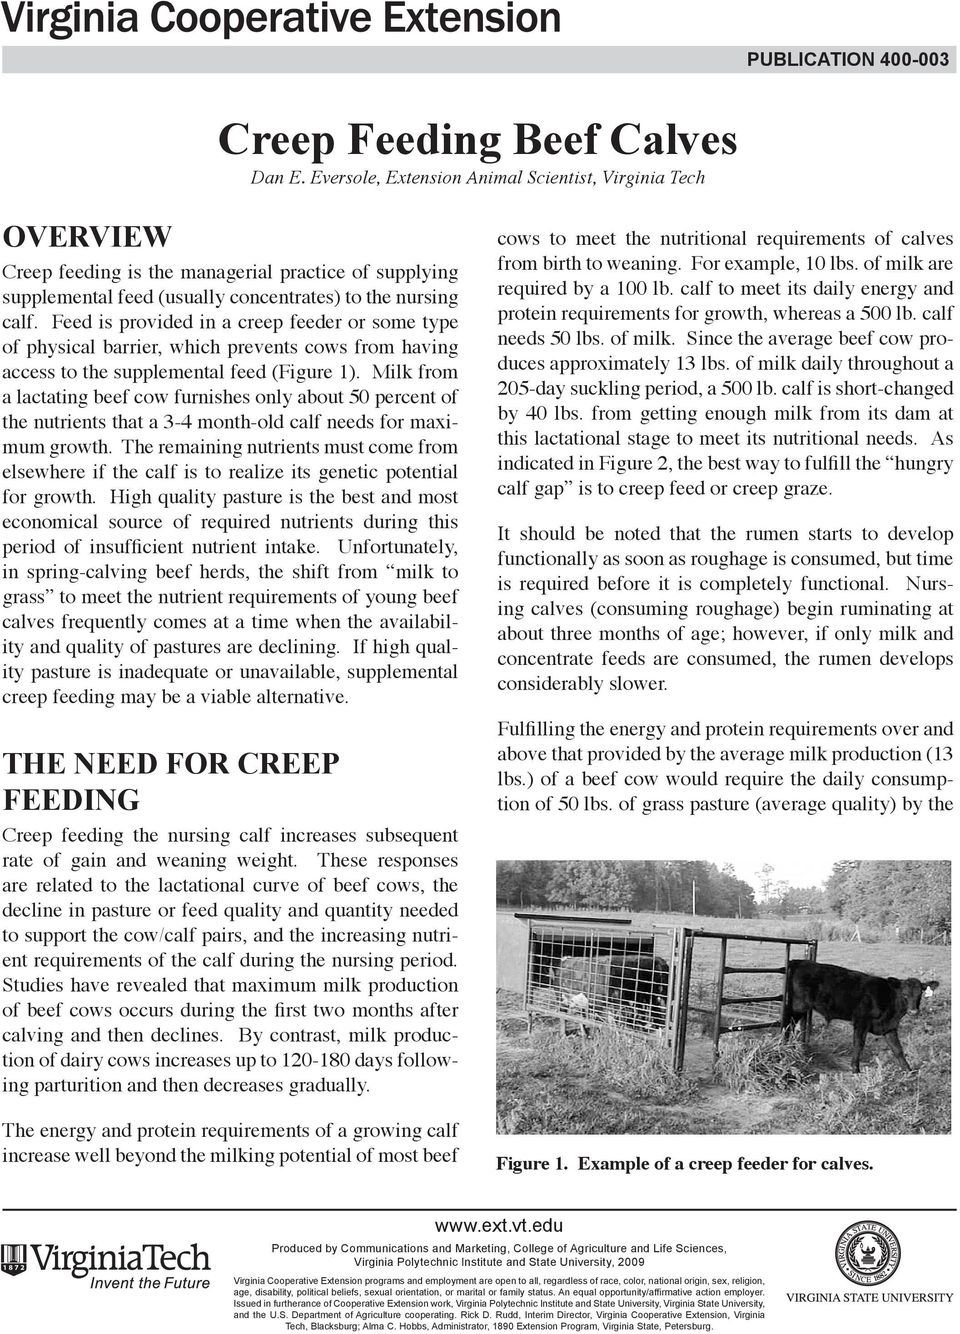 Feed is provided in a creep feeder or some type of physical barrier, which prevents cows from having access to the supplemental feed (Figure 1).